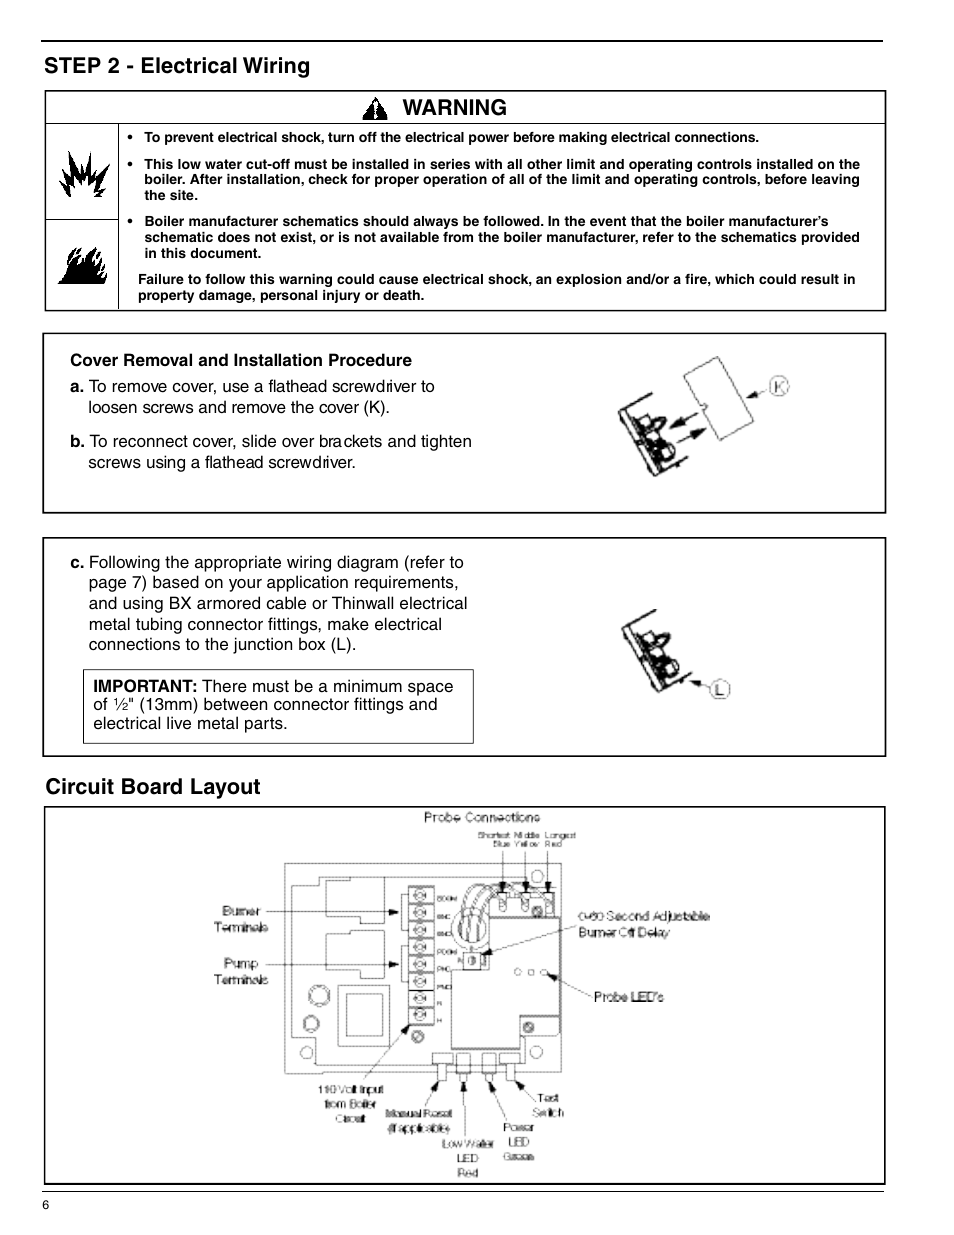 Circuit Board Layout Step 2 Electrical Wiring Warning Mcdonnell Schematics Miller Mm 286